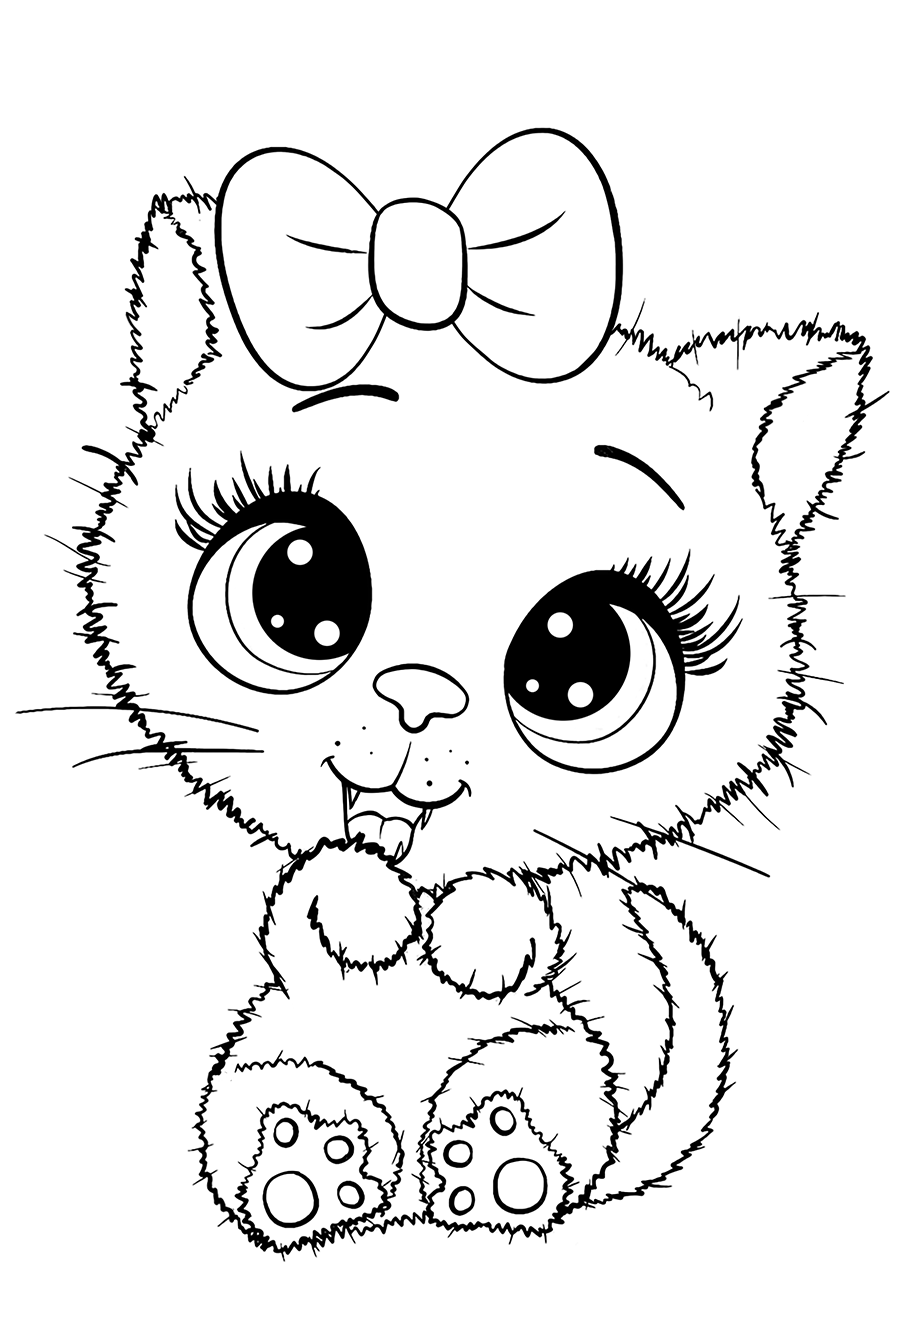 Kitty - Coloring pages for you